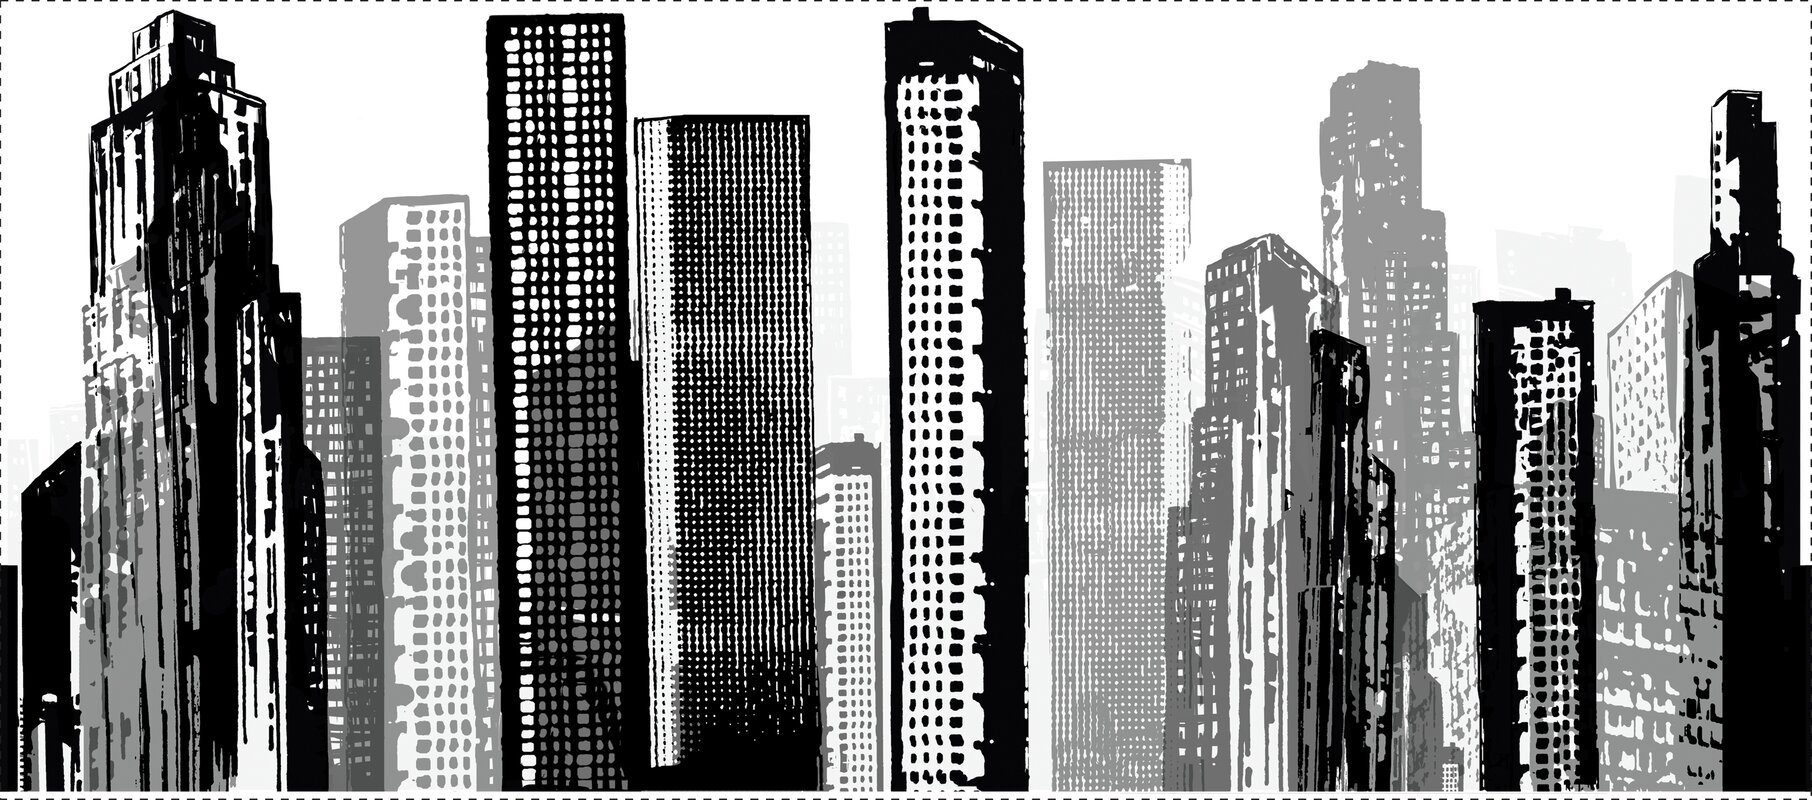 Room mates cityscape giant 18 x 3875 3d embossed wall mural cityscape giant 18 x 3875 3d embossed wall mural amipublicfo Gallery